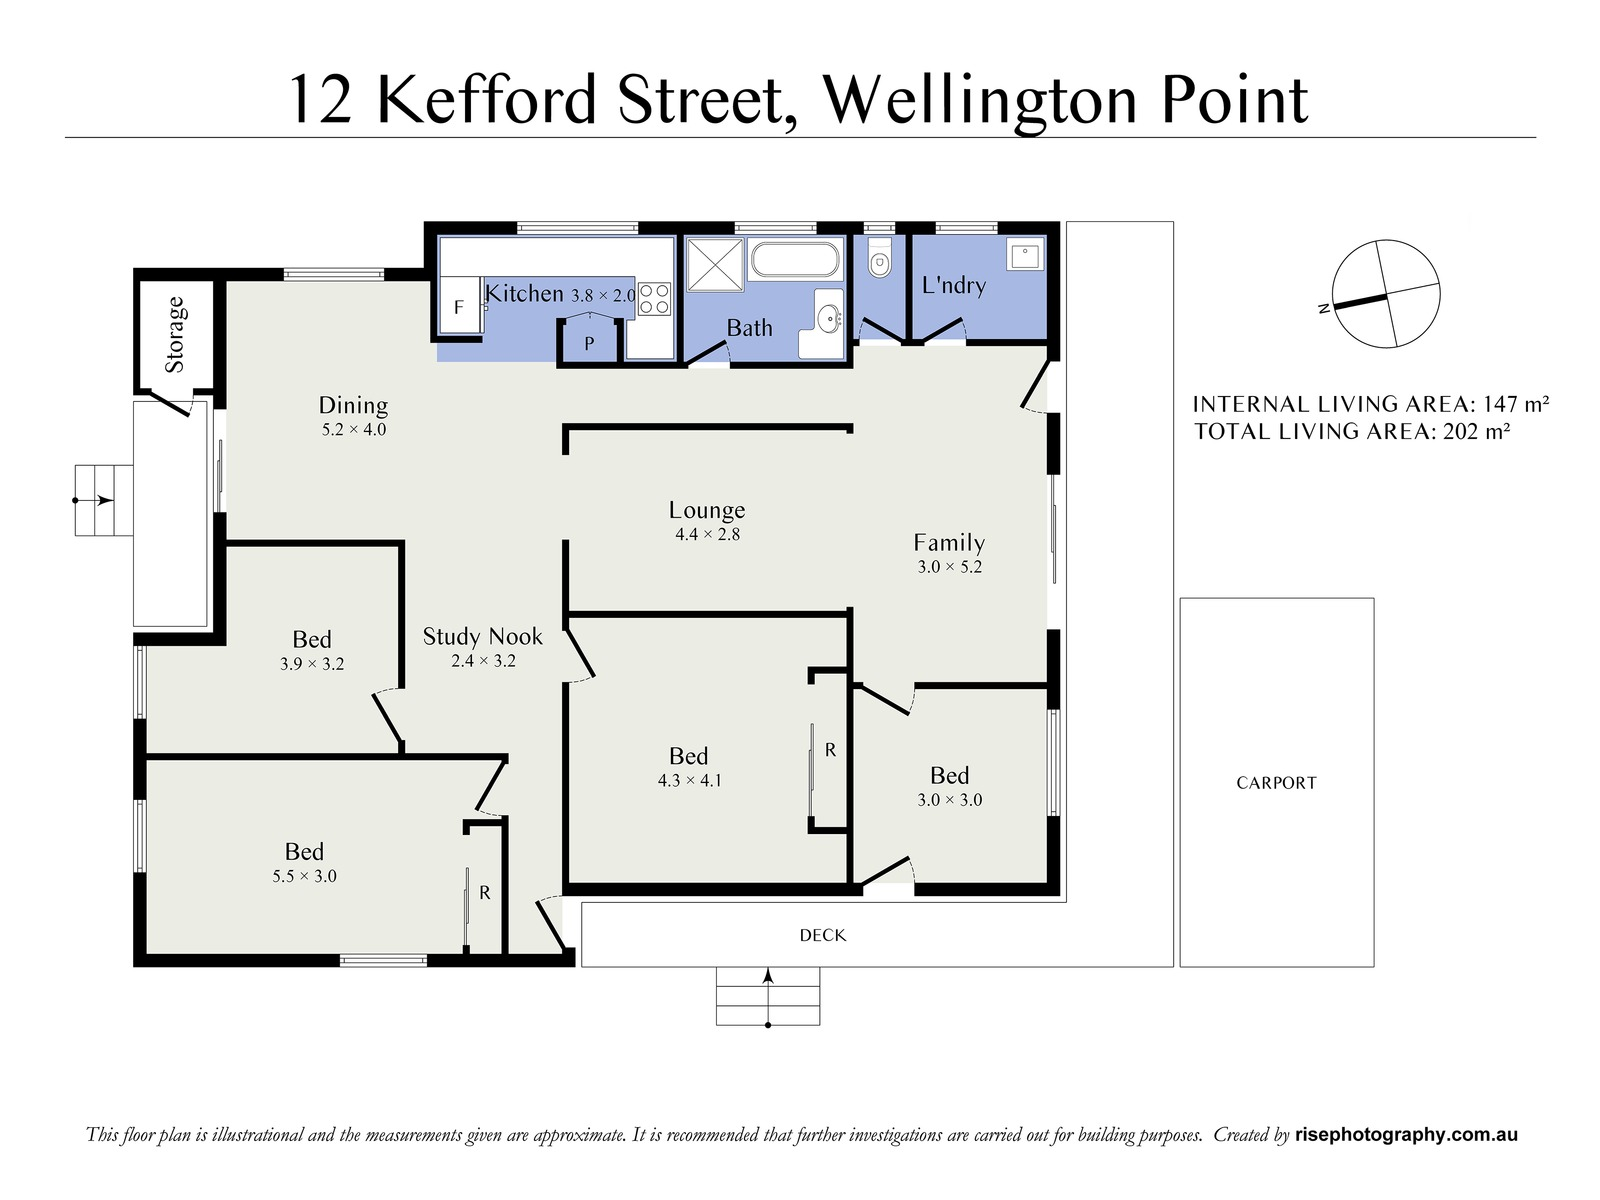 12 Kefford Street, Wellington Point